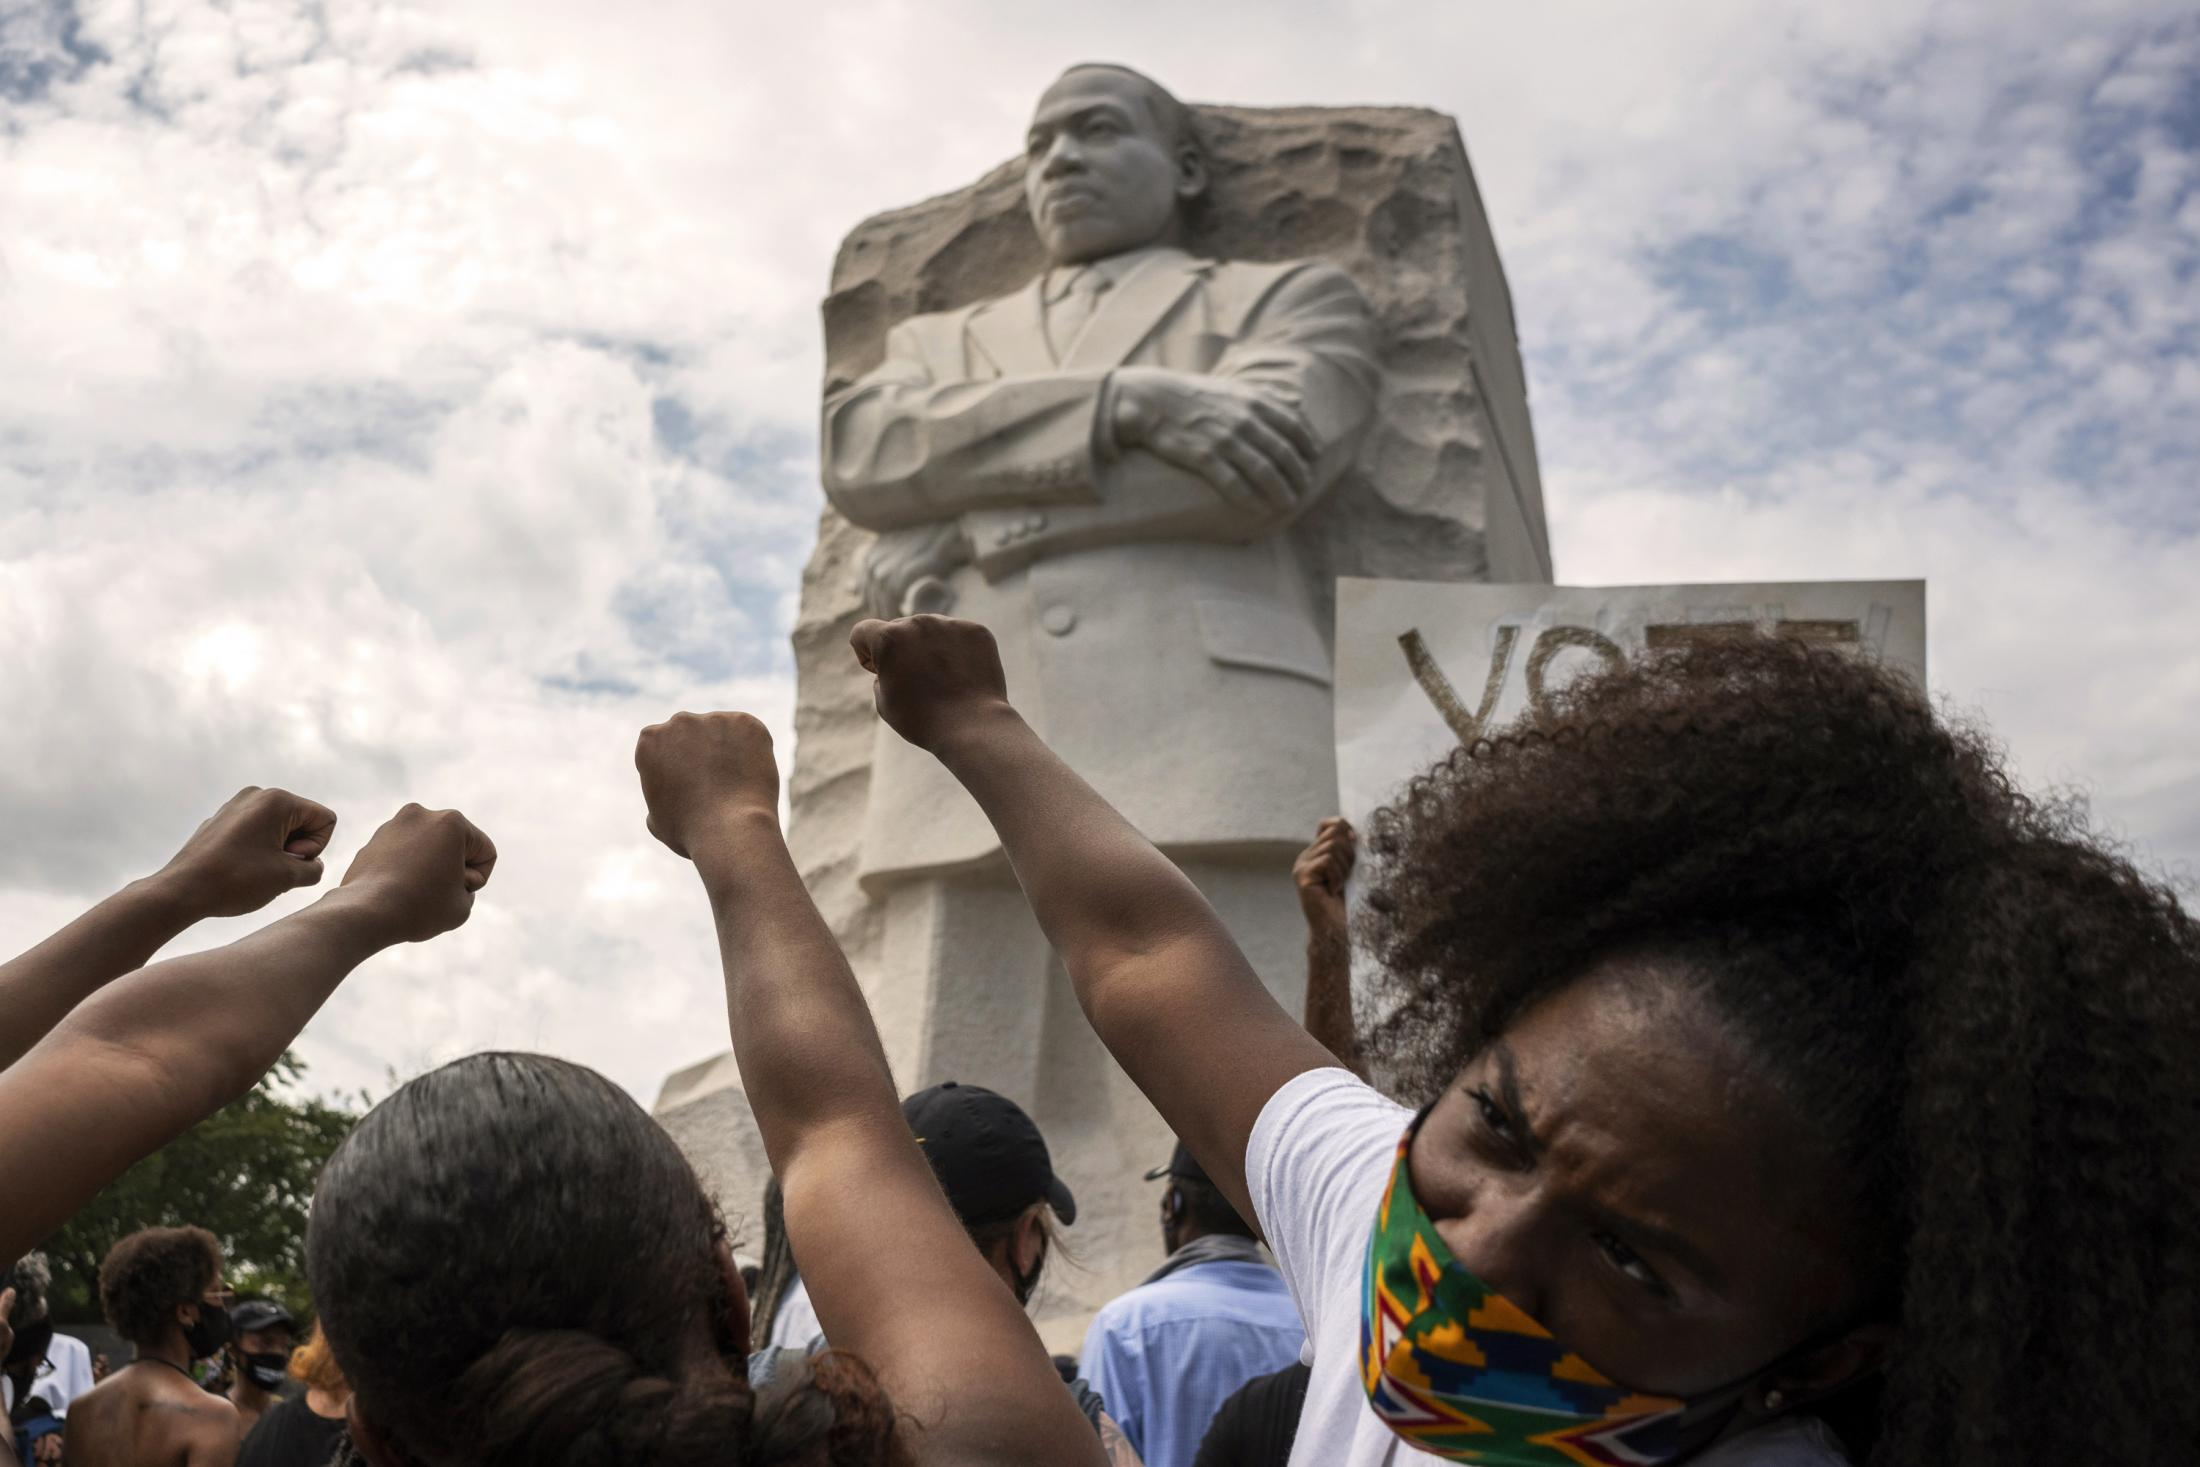 """Black women raise their fists in front of the MLK Memorial during the 57th annual March on Washington, Friday, August 28, 2020 in Washington, D.C. , Maryland. Also referred to as the """"Get Off Our Necks"""" march, this year's march focused on the recent Black Lives Matter movement while commemorating the work of previous civil rights leaders."""